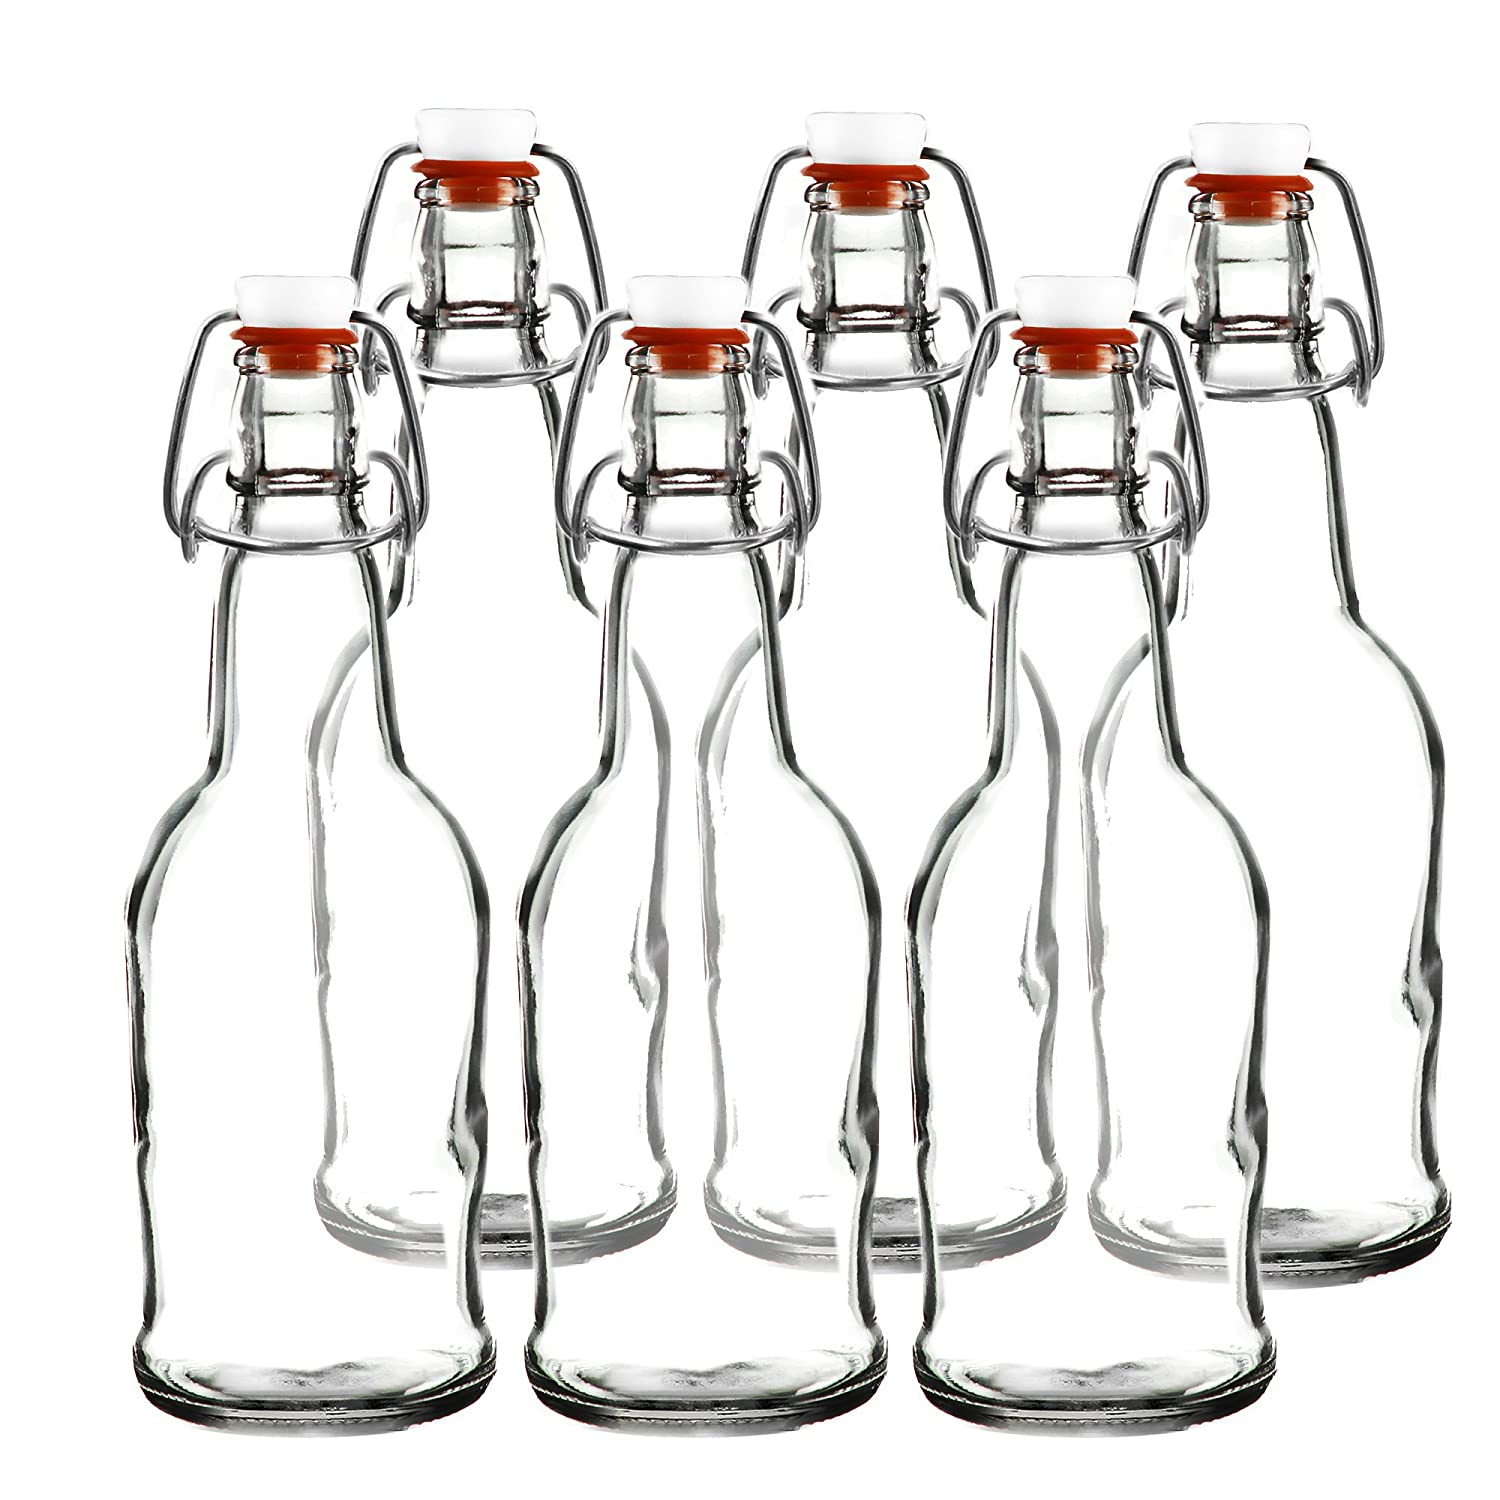 Easy Cap Beer Bottles - Kombucha Bottles - 16 oz. - Clear 6 pack - EZ Cap -- Original Cherry Blossom Hardware Bottles (6, Clear Mason Jar Bottles)